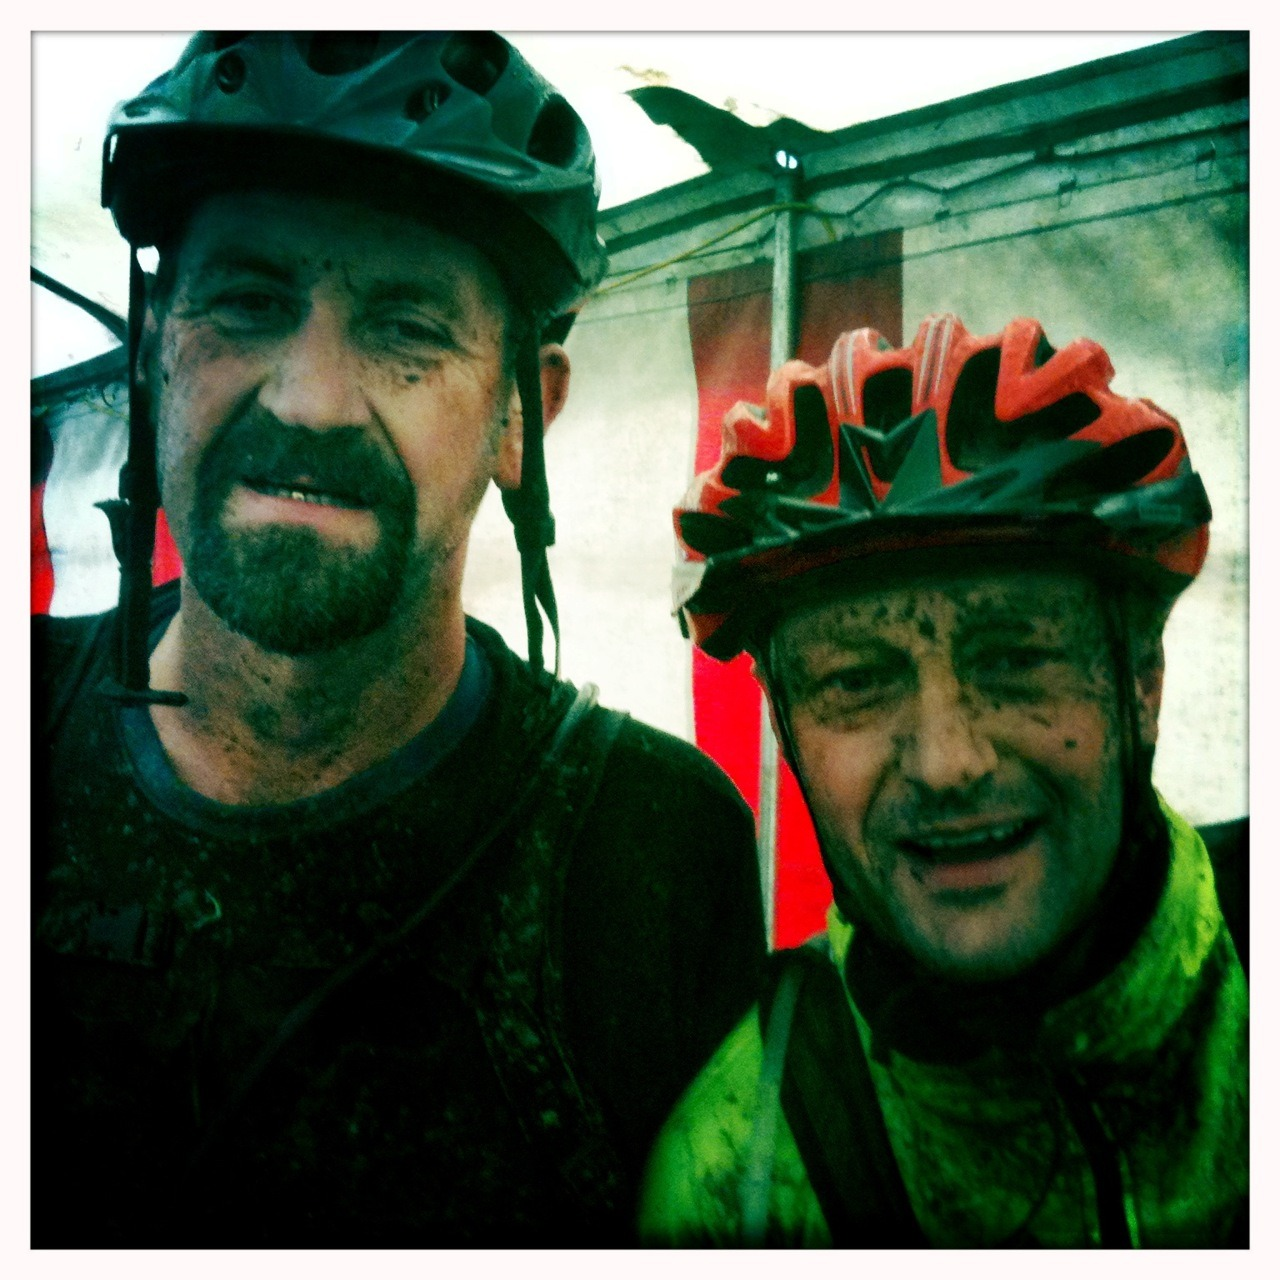 Great time at the very wet and muddy Mt Somers Bike Race 2011.  Competitors had a wonderful time and the organization from the Mayfield & District Lions Club was superb. From logistics to safety and food the volunteer team were amazing and left nothing to chance. Check out the video on AshburtonTV.  www.ashburtontv.co.nz